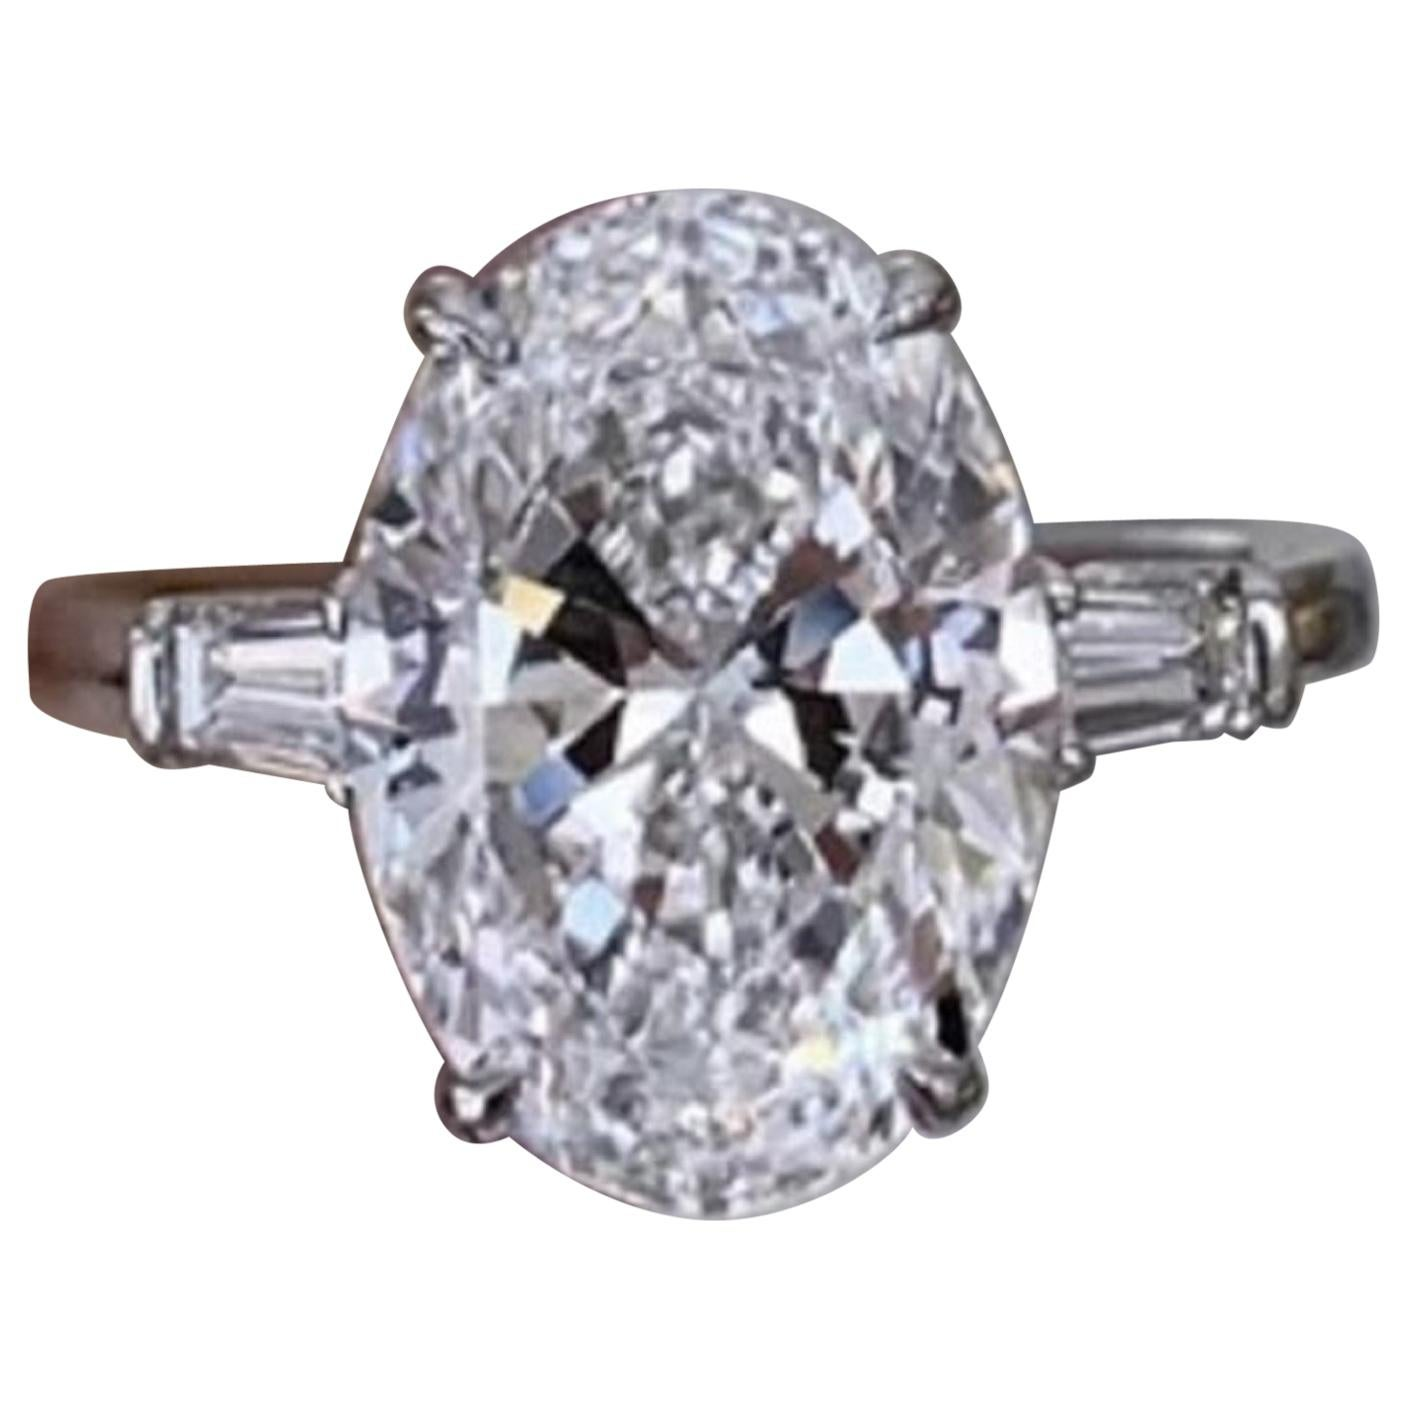 FLAWLESS D Color GIA Certified 5.65 Carat Oval Cut White Diamond Ring